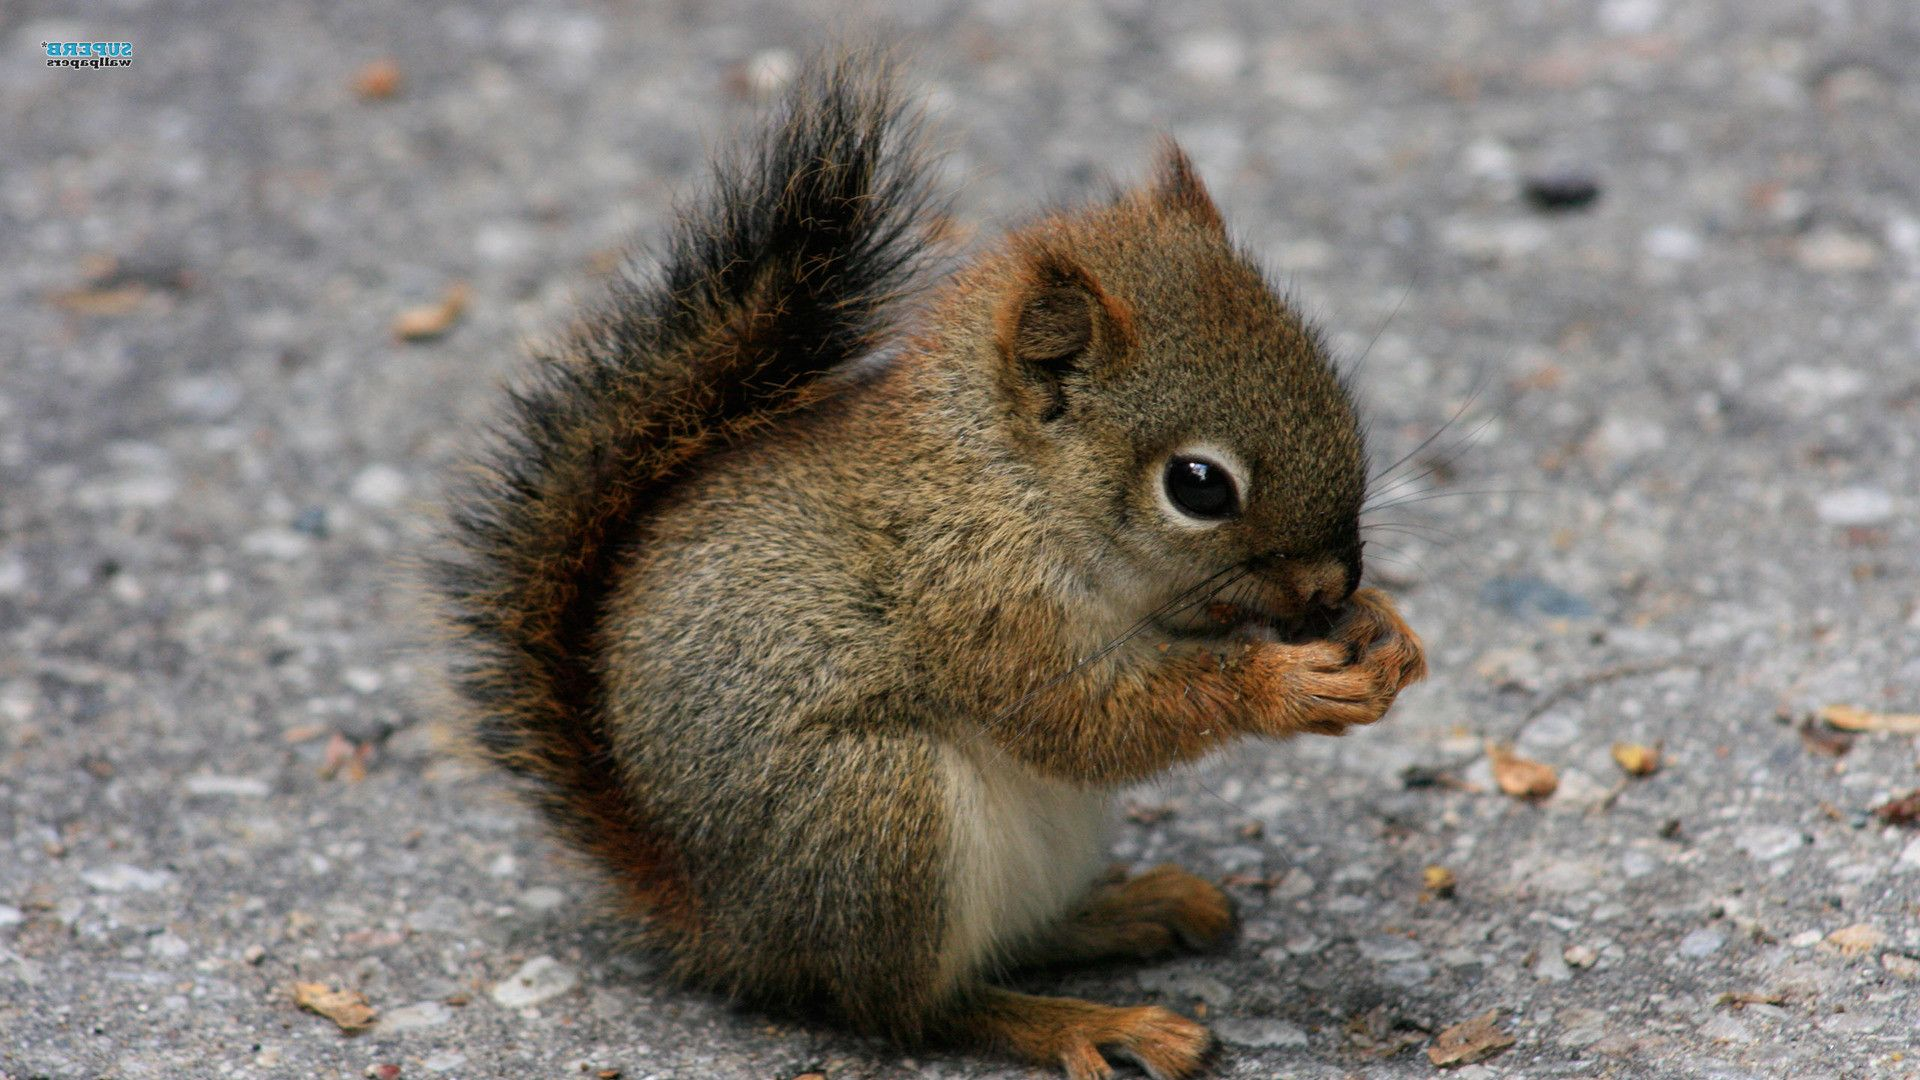 baby animals home animals cute squirrel baby animal hd wallpaper for beyond cuteness. Black Bedroom Furniture Sets. Home Design Ideas